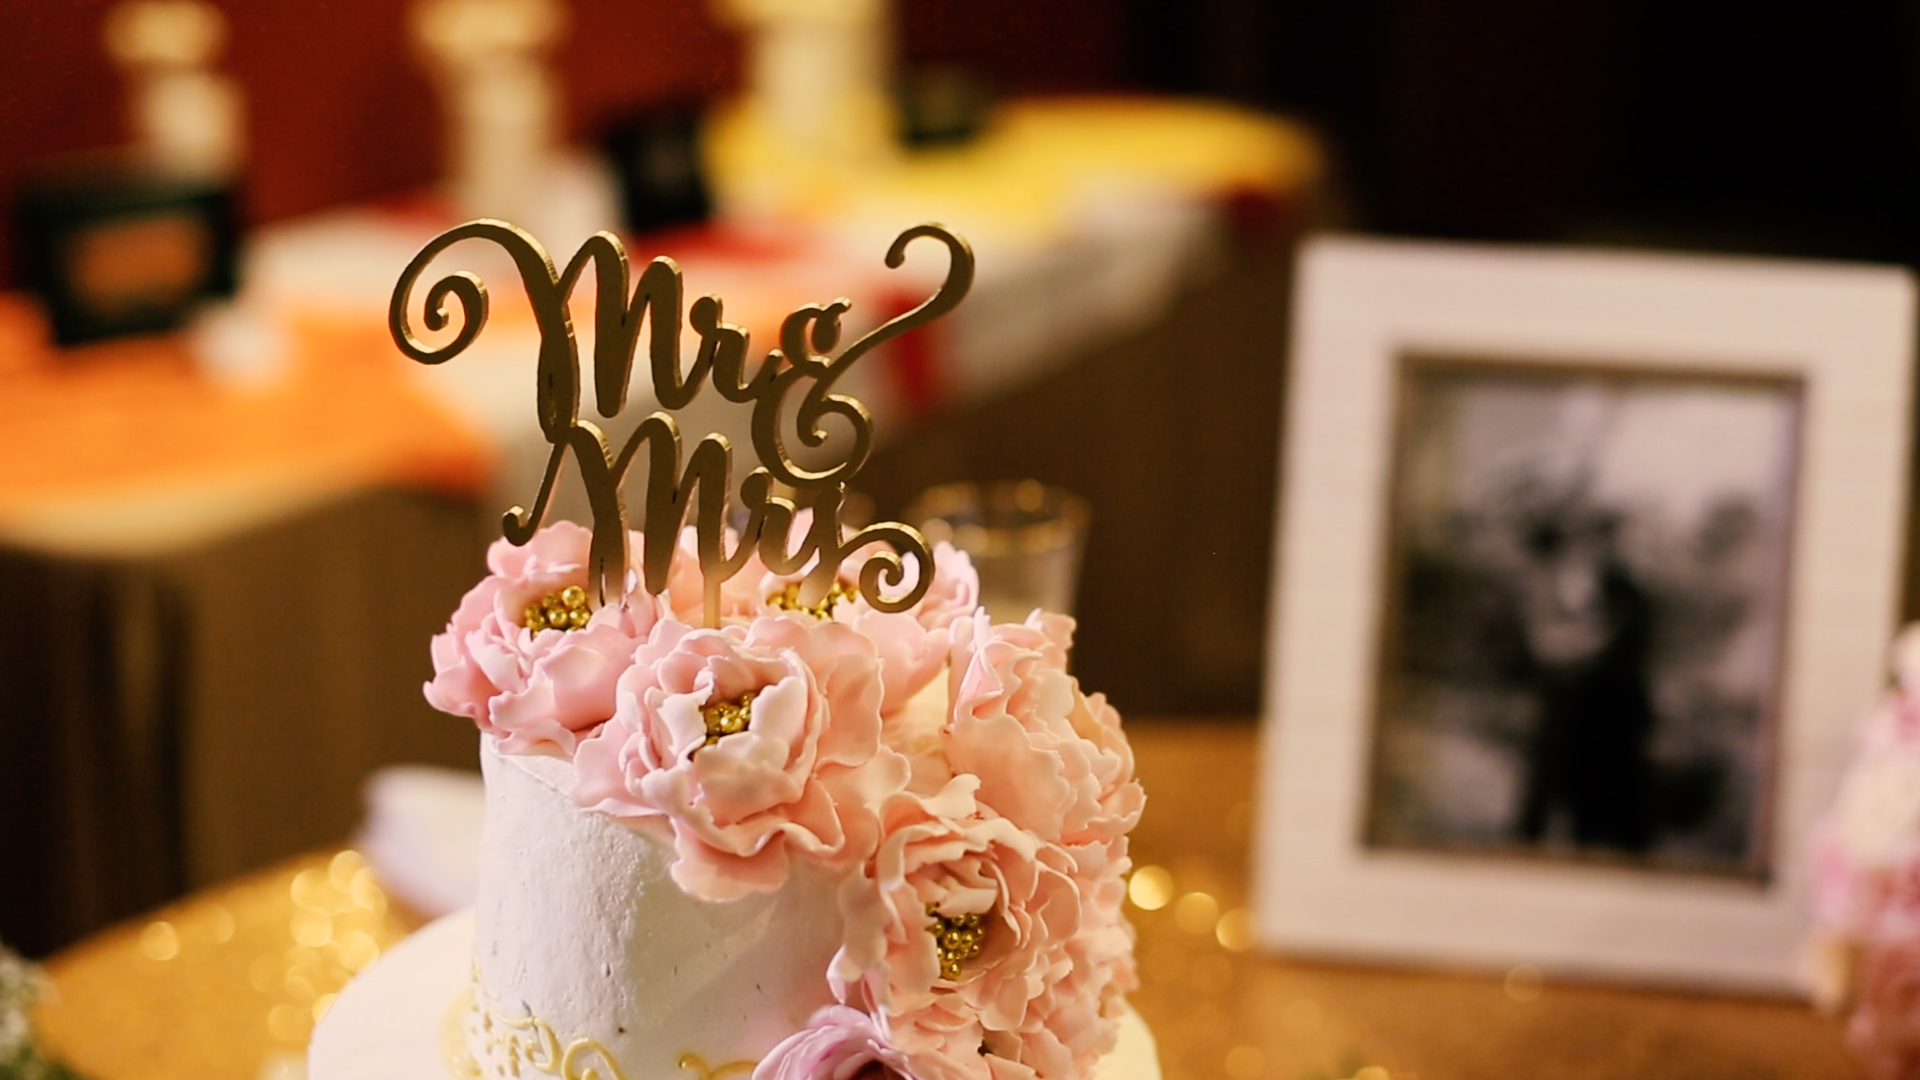 We were loving this gold cake topper.